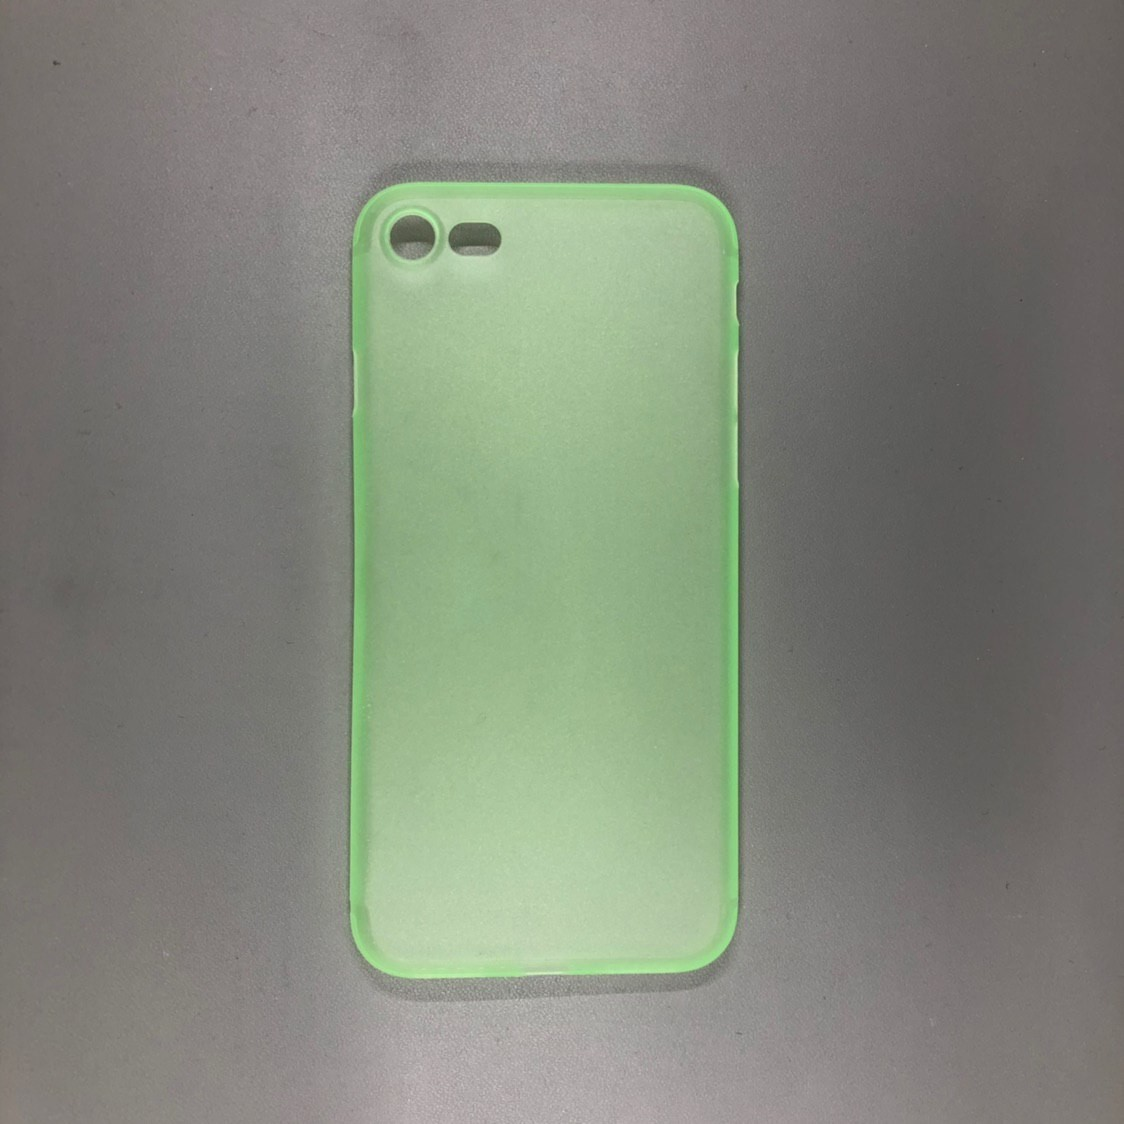 iPhone 7 Plastic Green